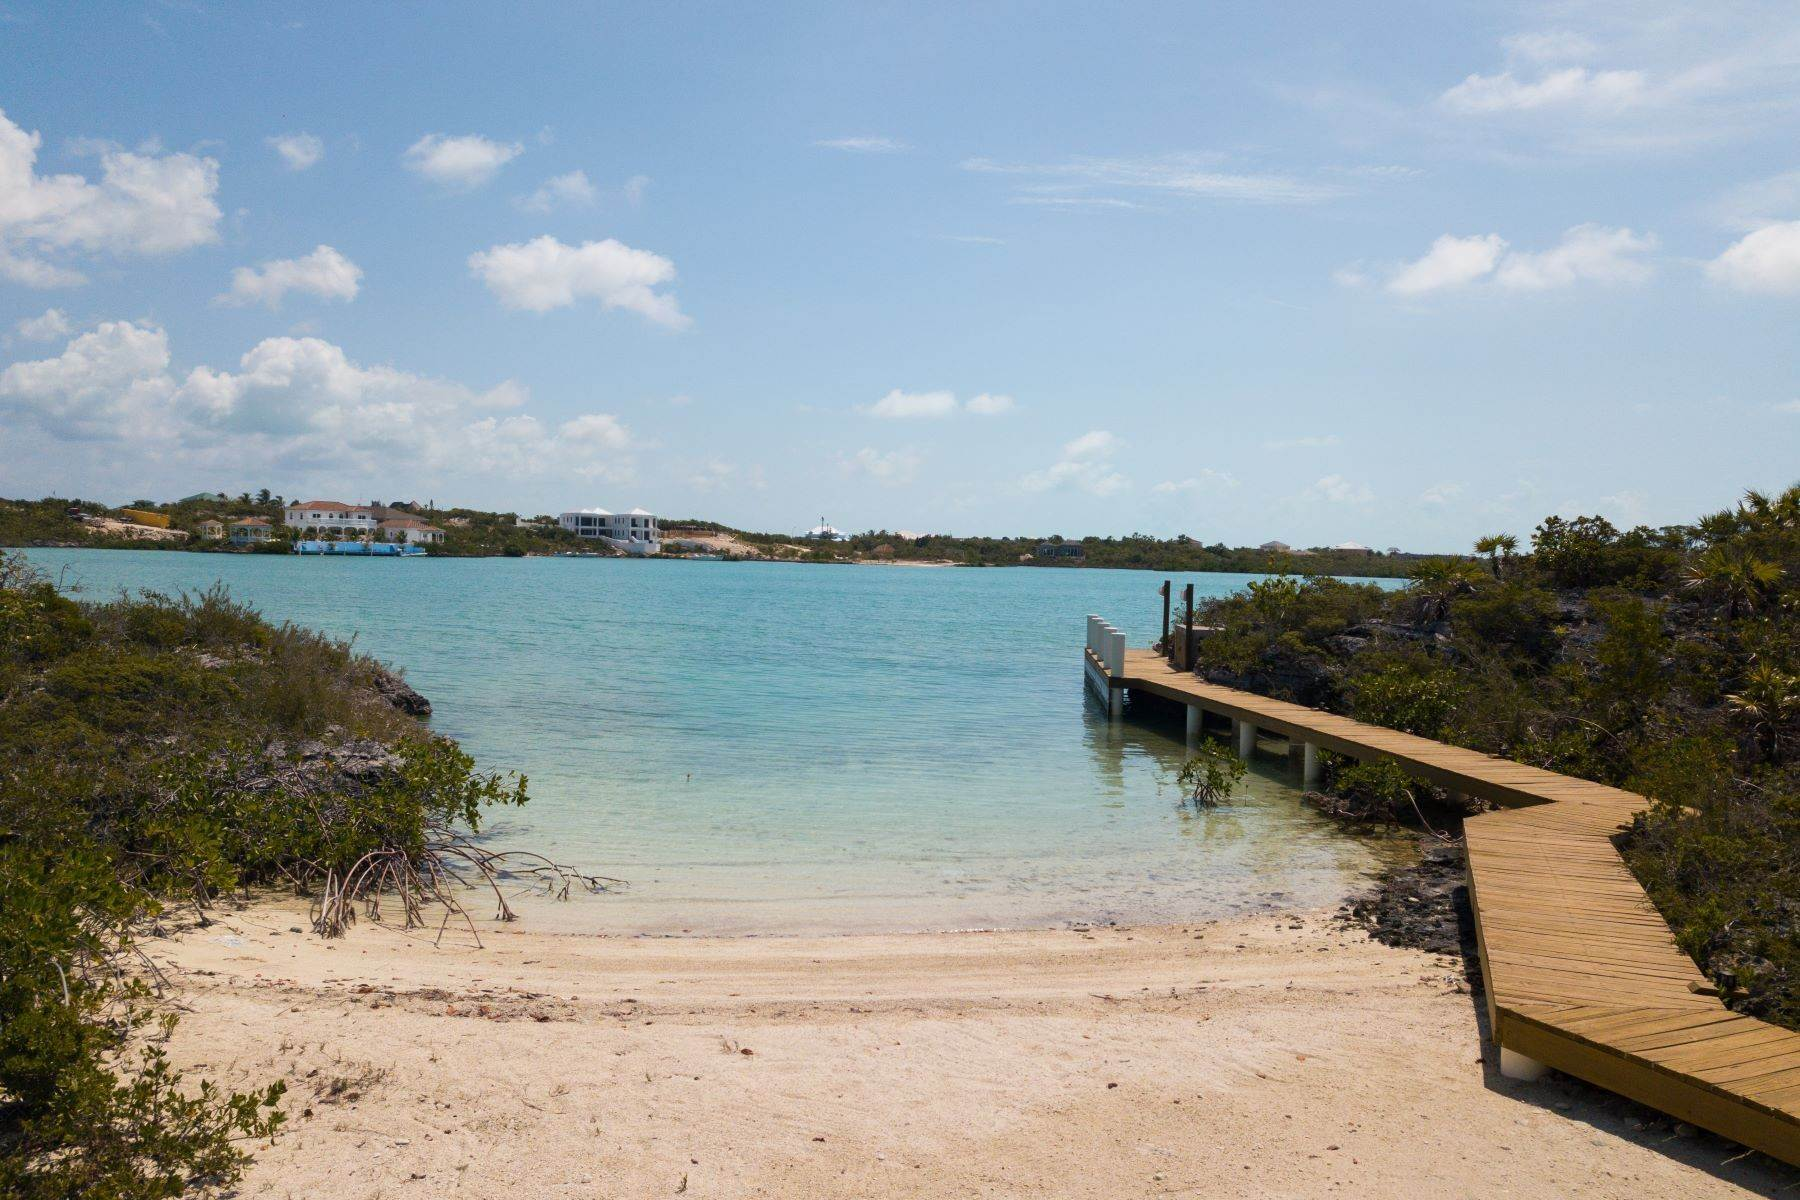 Terreno por un Venta en Oceanview Silly Creek Property Silly Creek, Providenciales Islas Turcas y Caicos